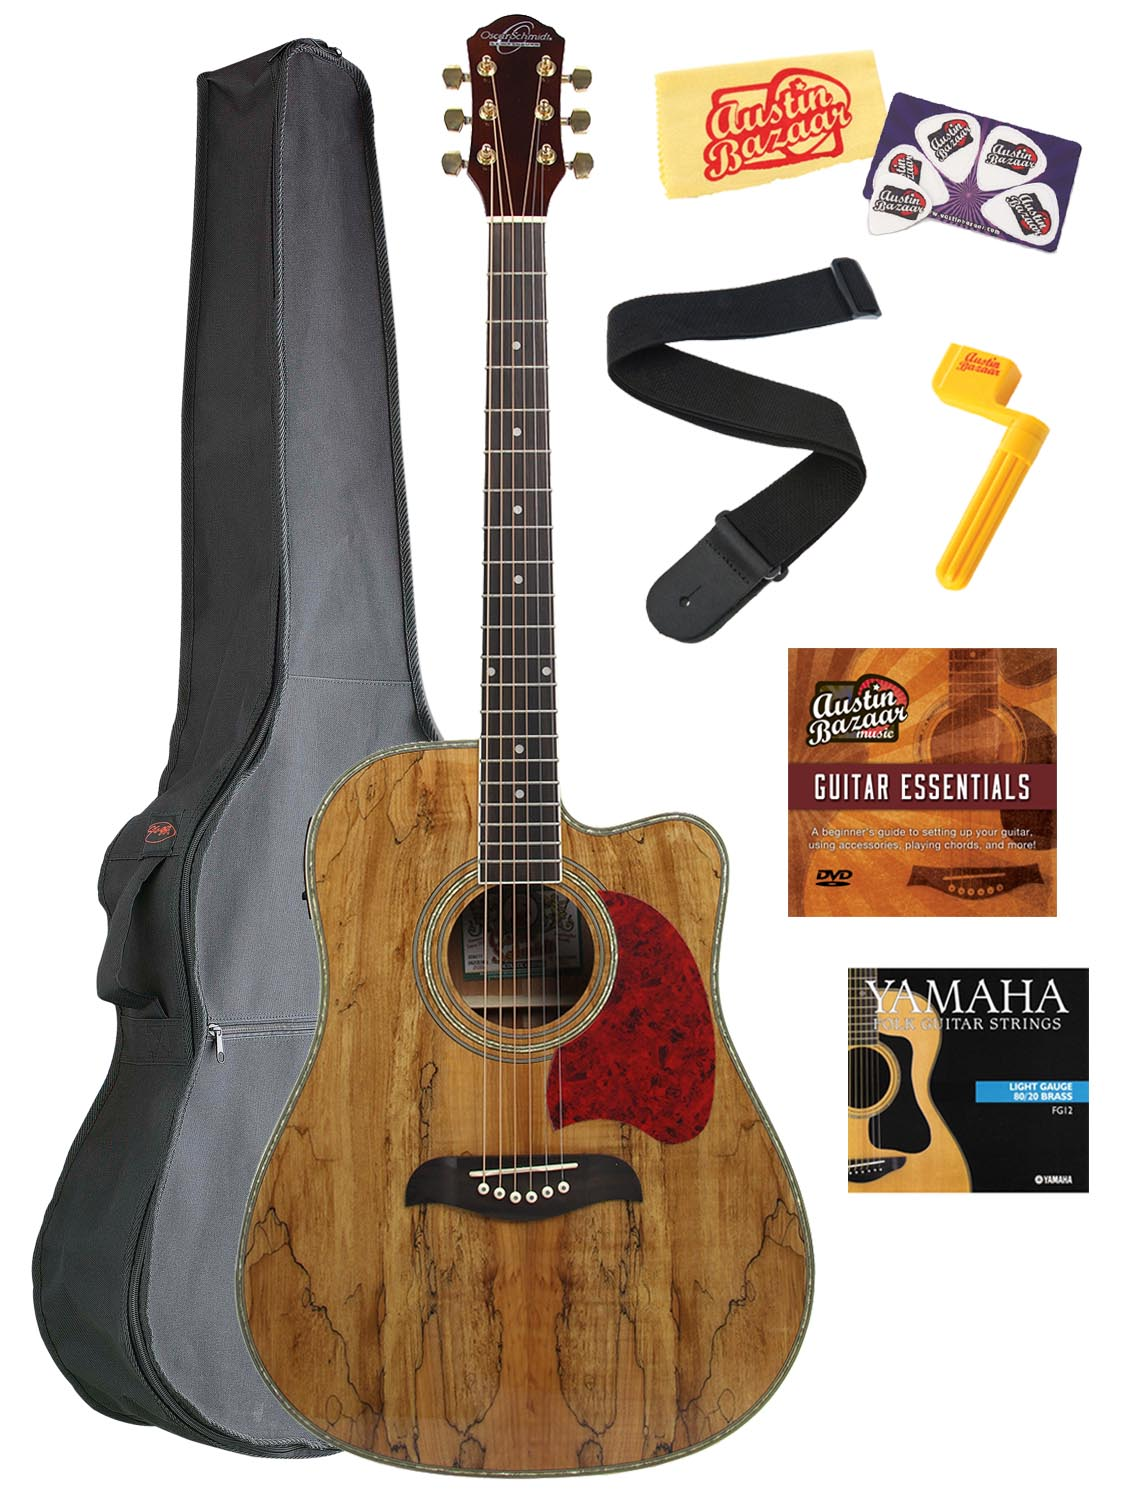 Custom Fender Telecaster Natural Wood Electric Guitar further Chris evans has a really nicejacket additionally Photo further Showthread moreover 401207254719. on oscar schmidt guitar gold top